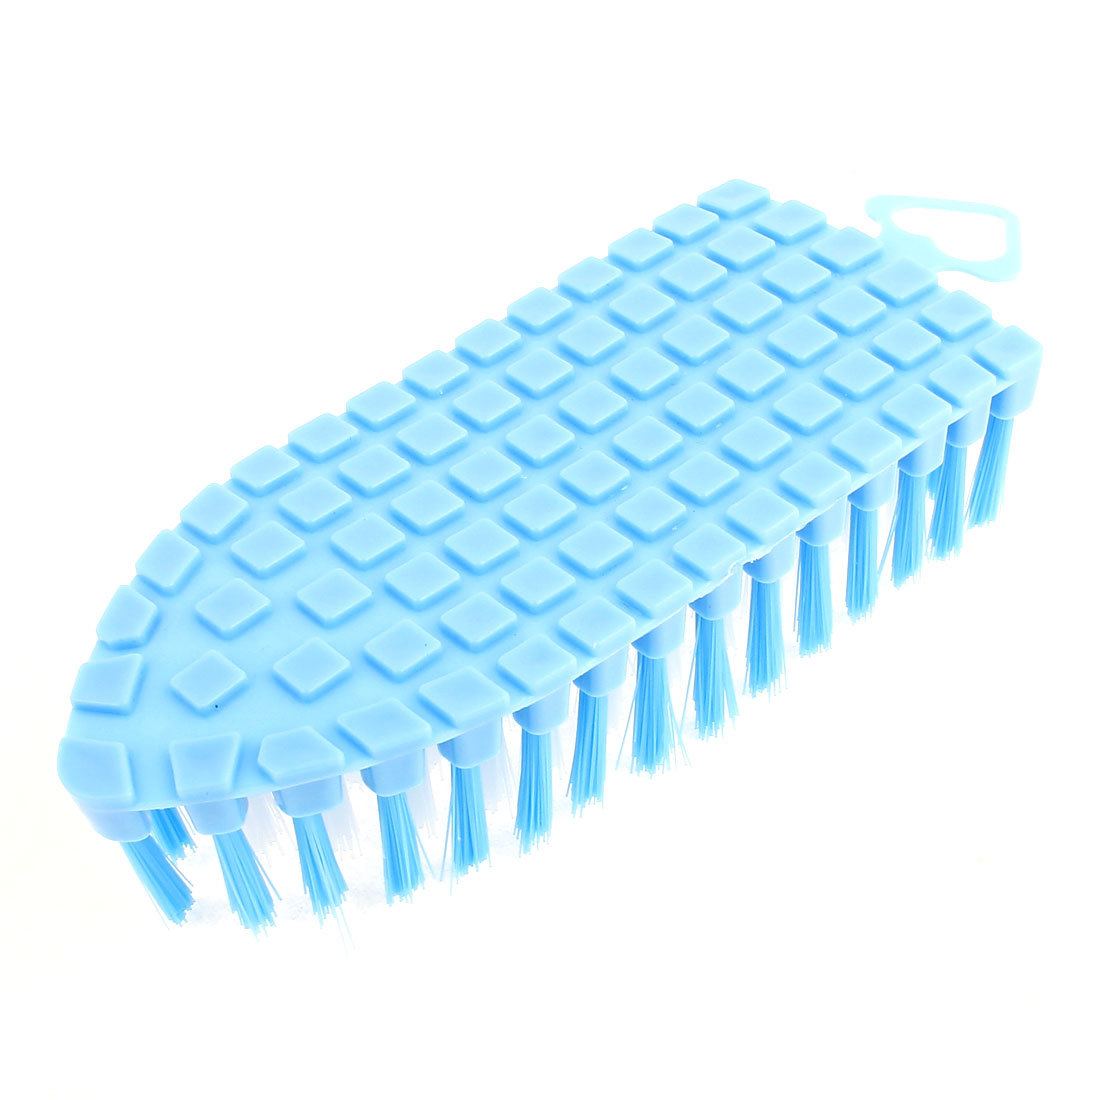 156 x 65mm Household Bendable Brush for Daily Commode Cleaning Blue